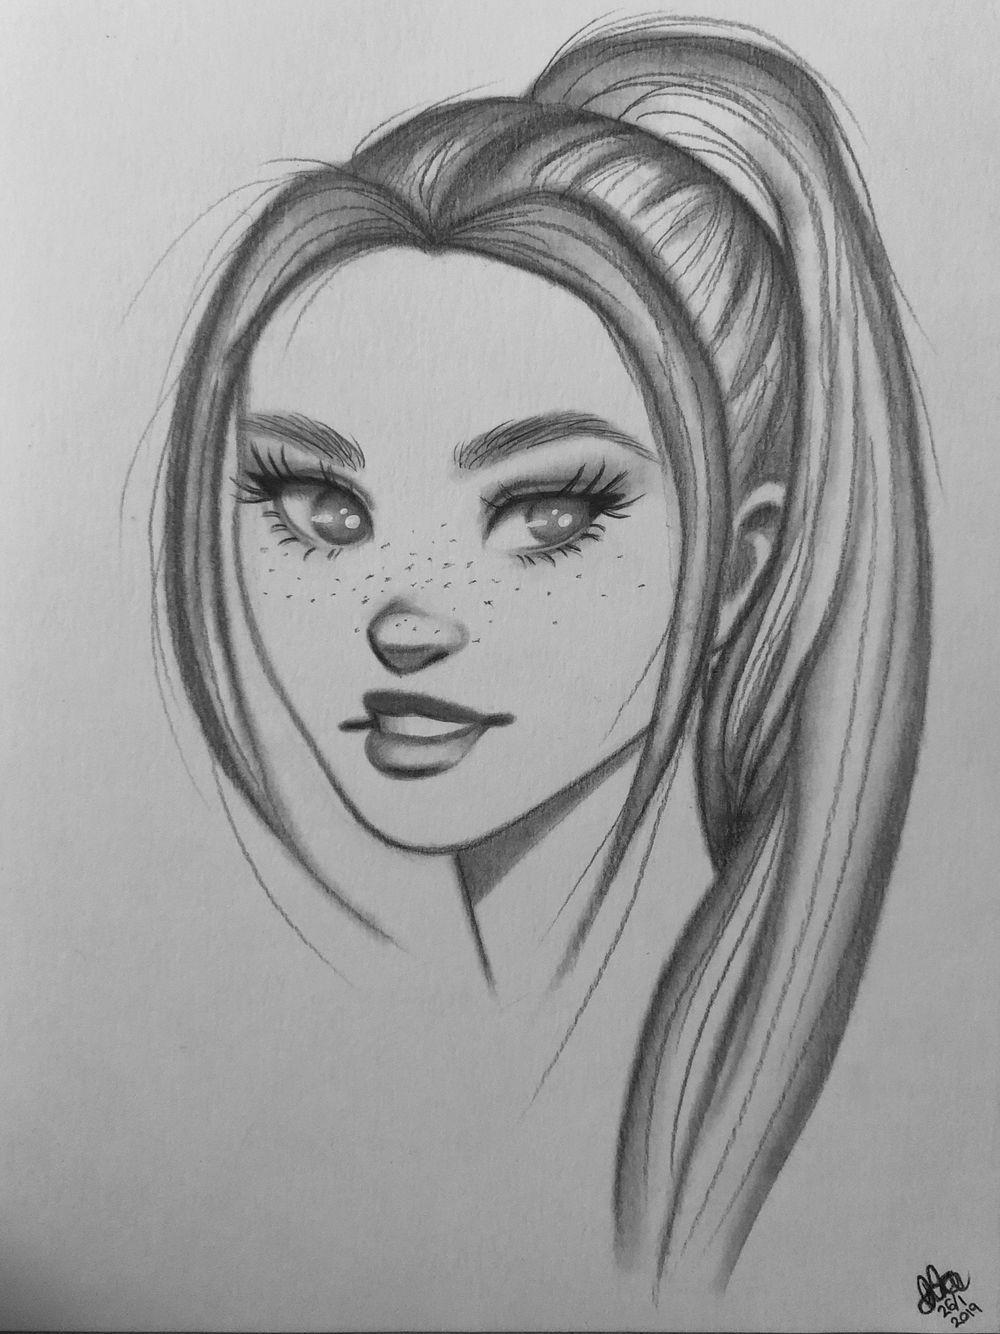 Sketching female characters - image 2 - student project